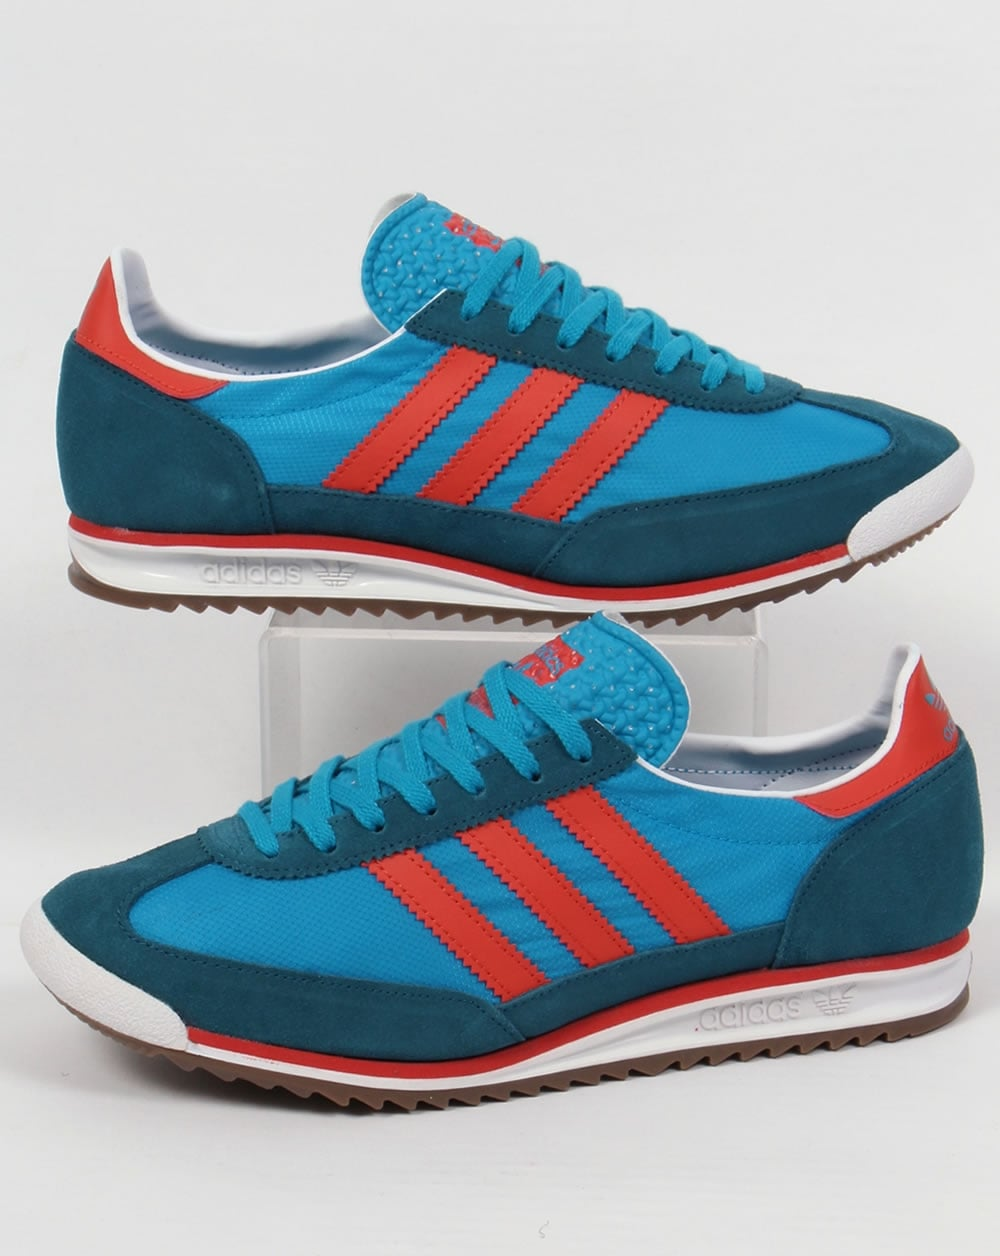 new product aae69 f5461 adidas Trainers Adidas SL 72 Trainers Bold Aqua surf Red